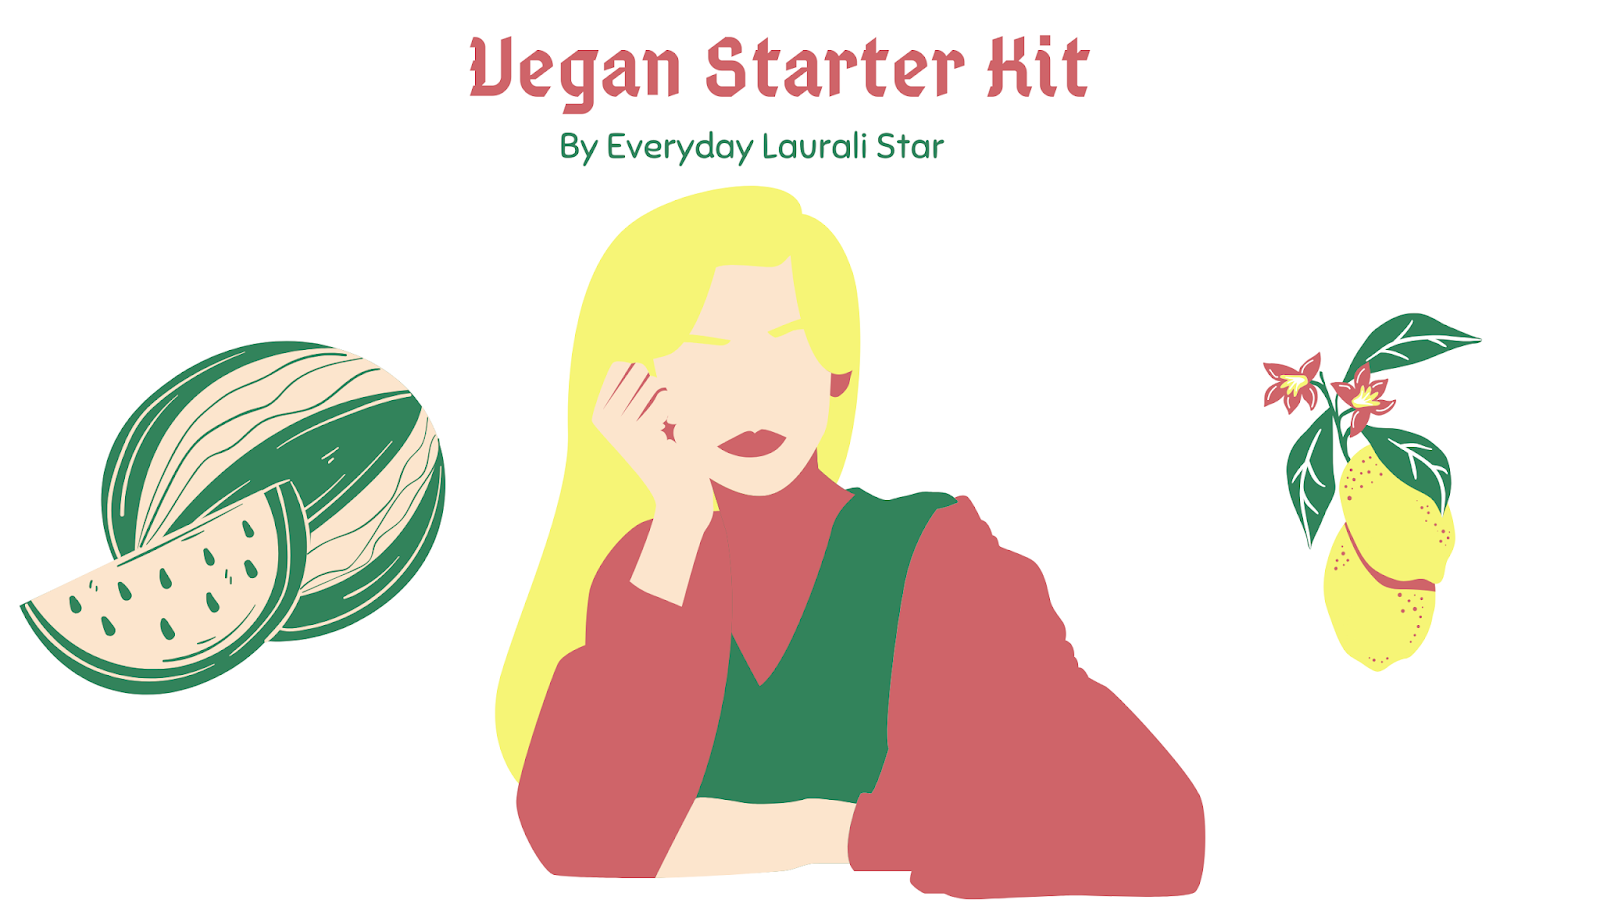 Illustration of woman daydreaming about being a vegan + plant-based eater with fruits and veggies and whole foods all around her